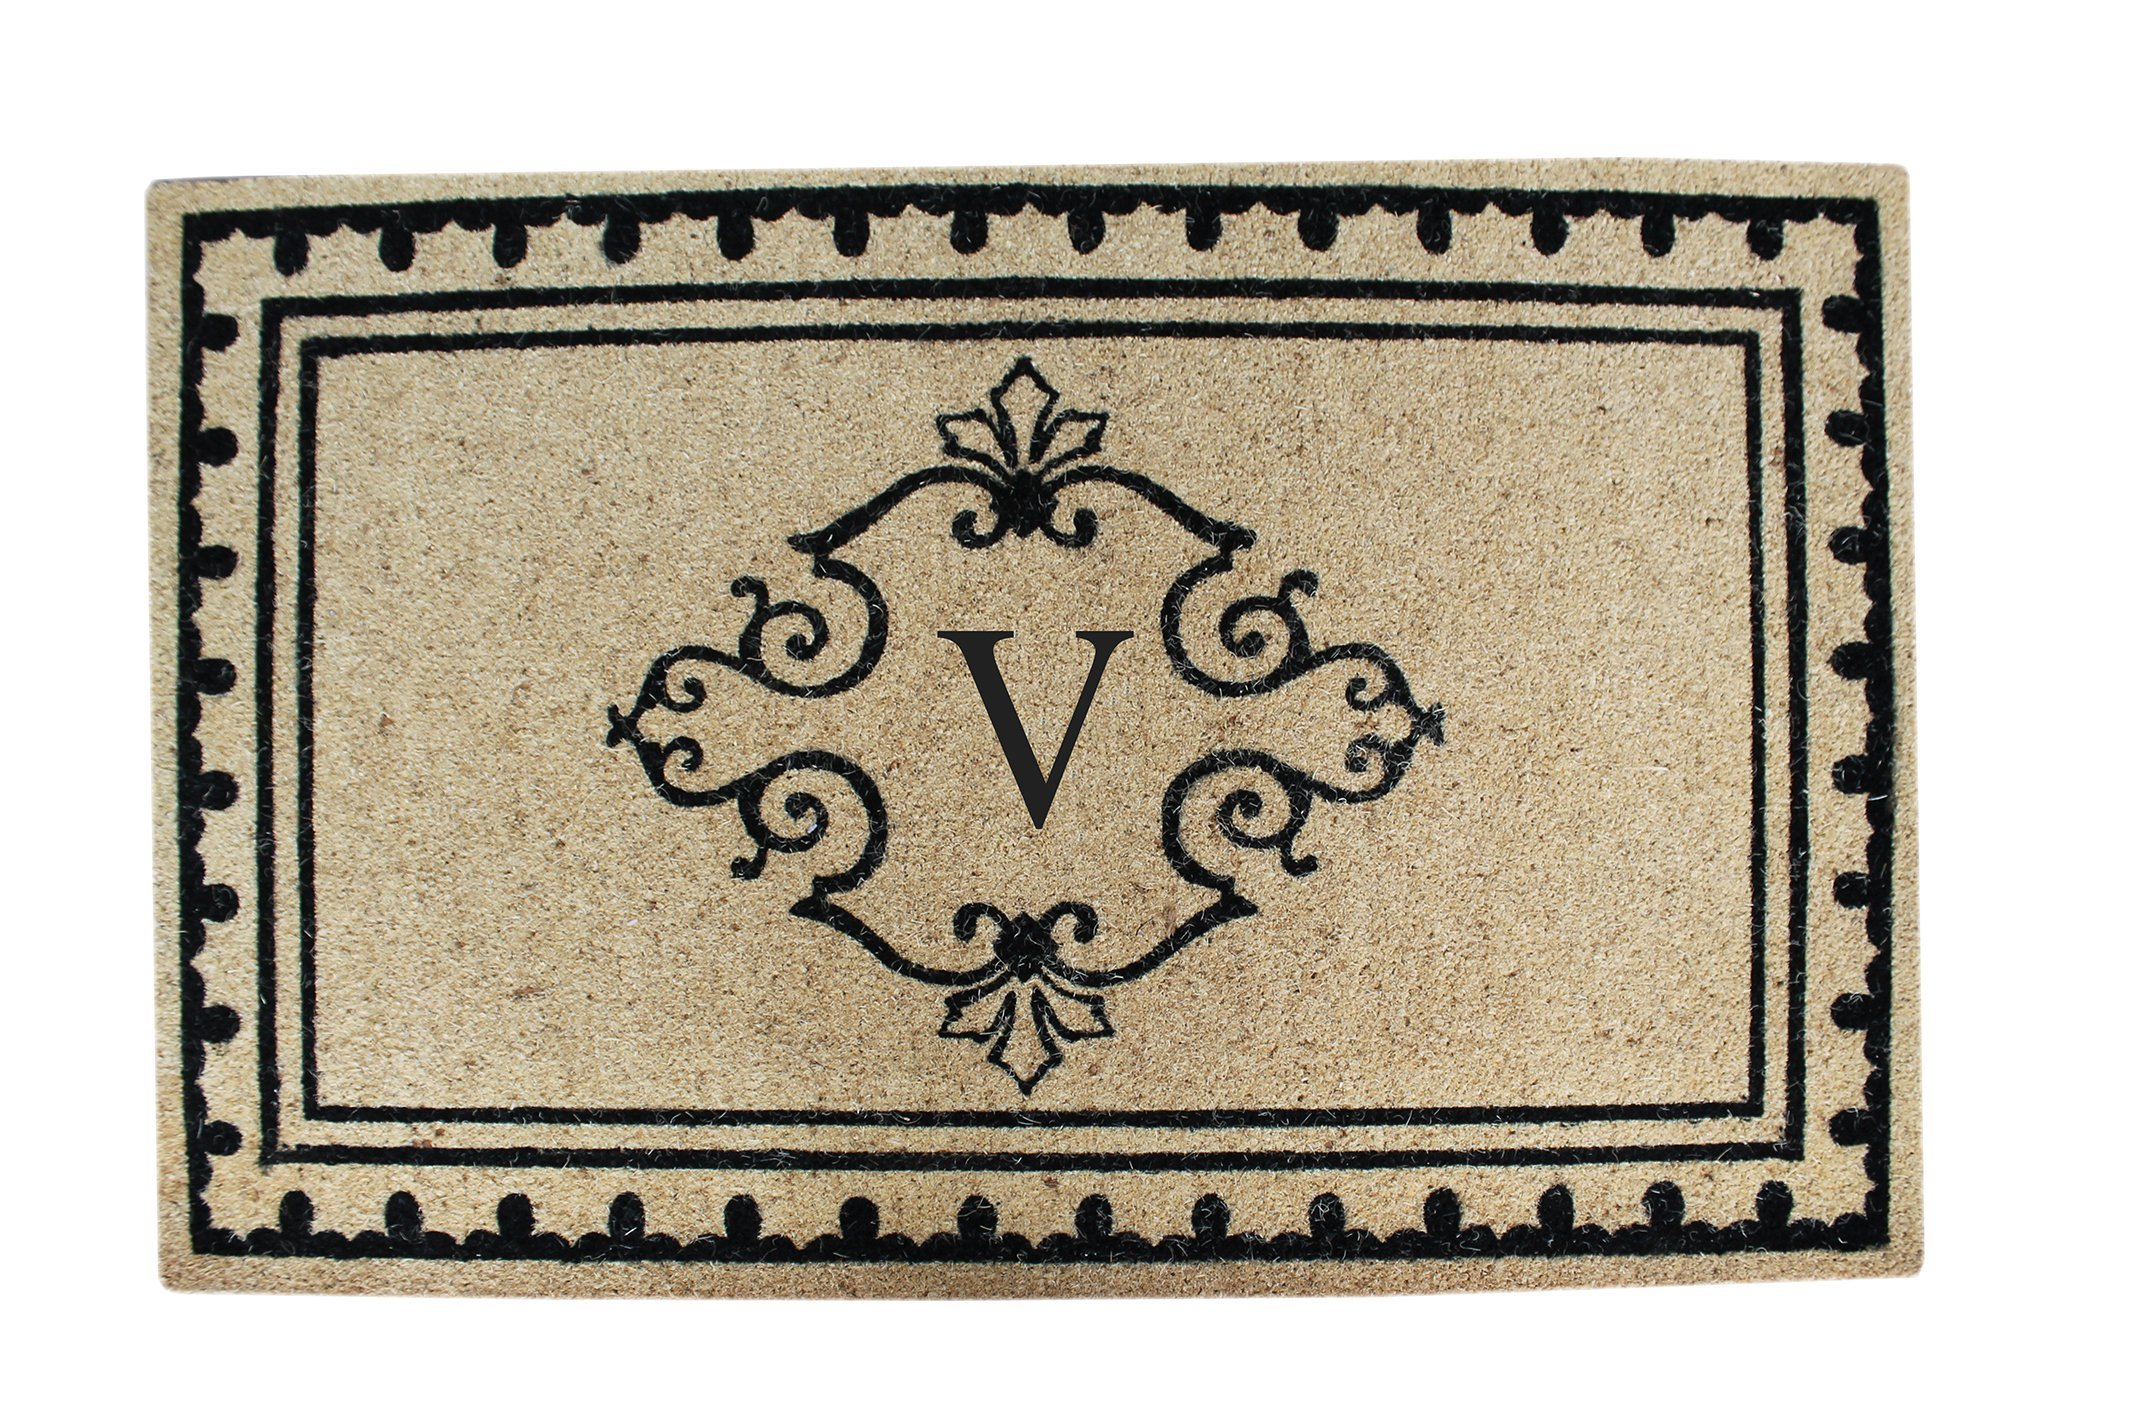 A1 Home Collections PT4008-VA1HC First Impression Artistic Border Entry Monogrammed Double Doormat, 30'' x 48'', Beige/Black